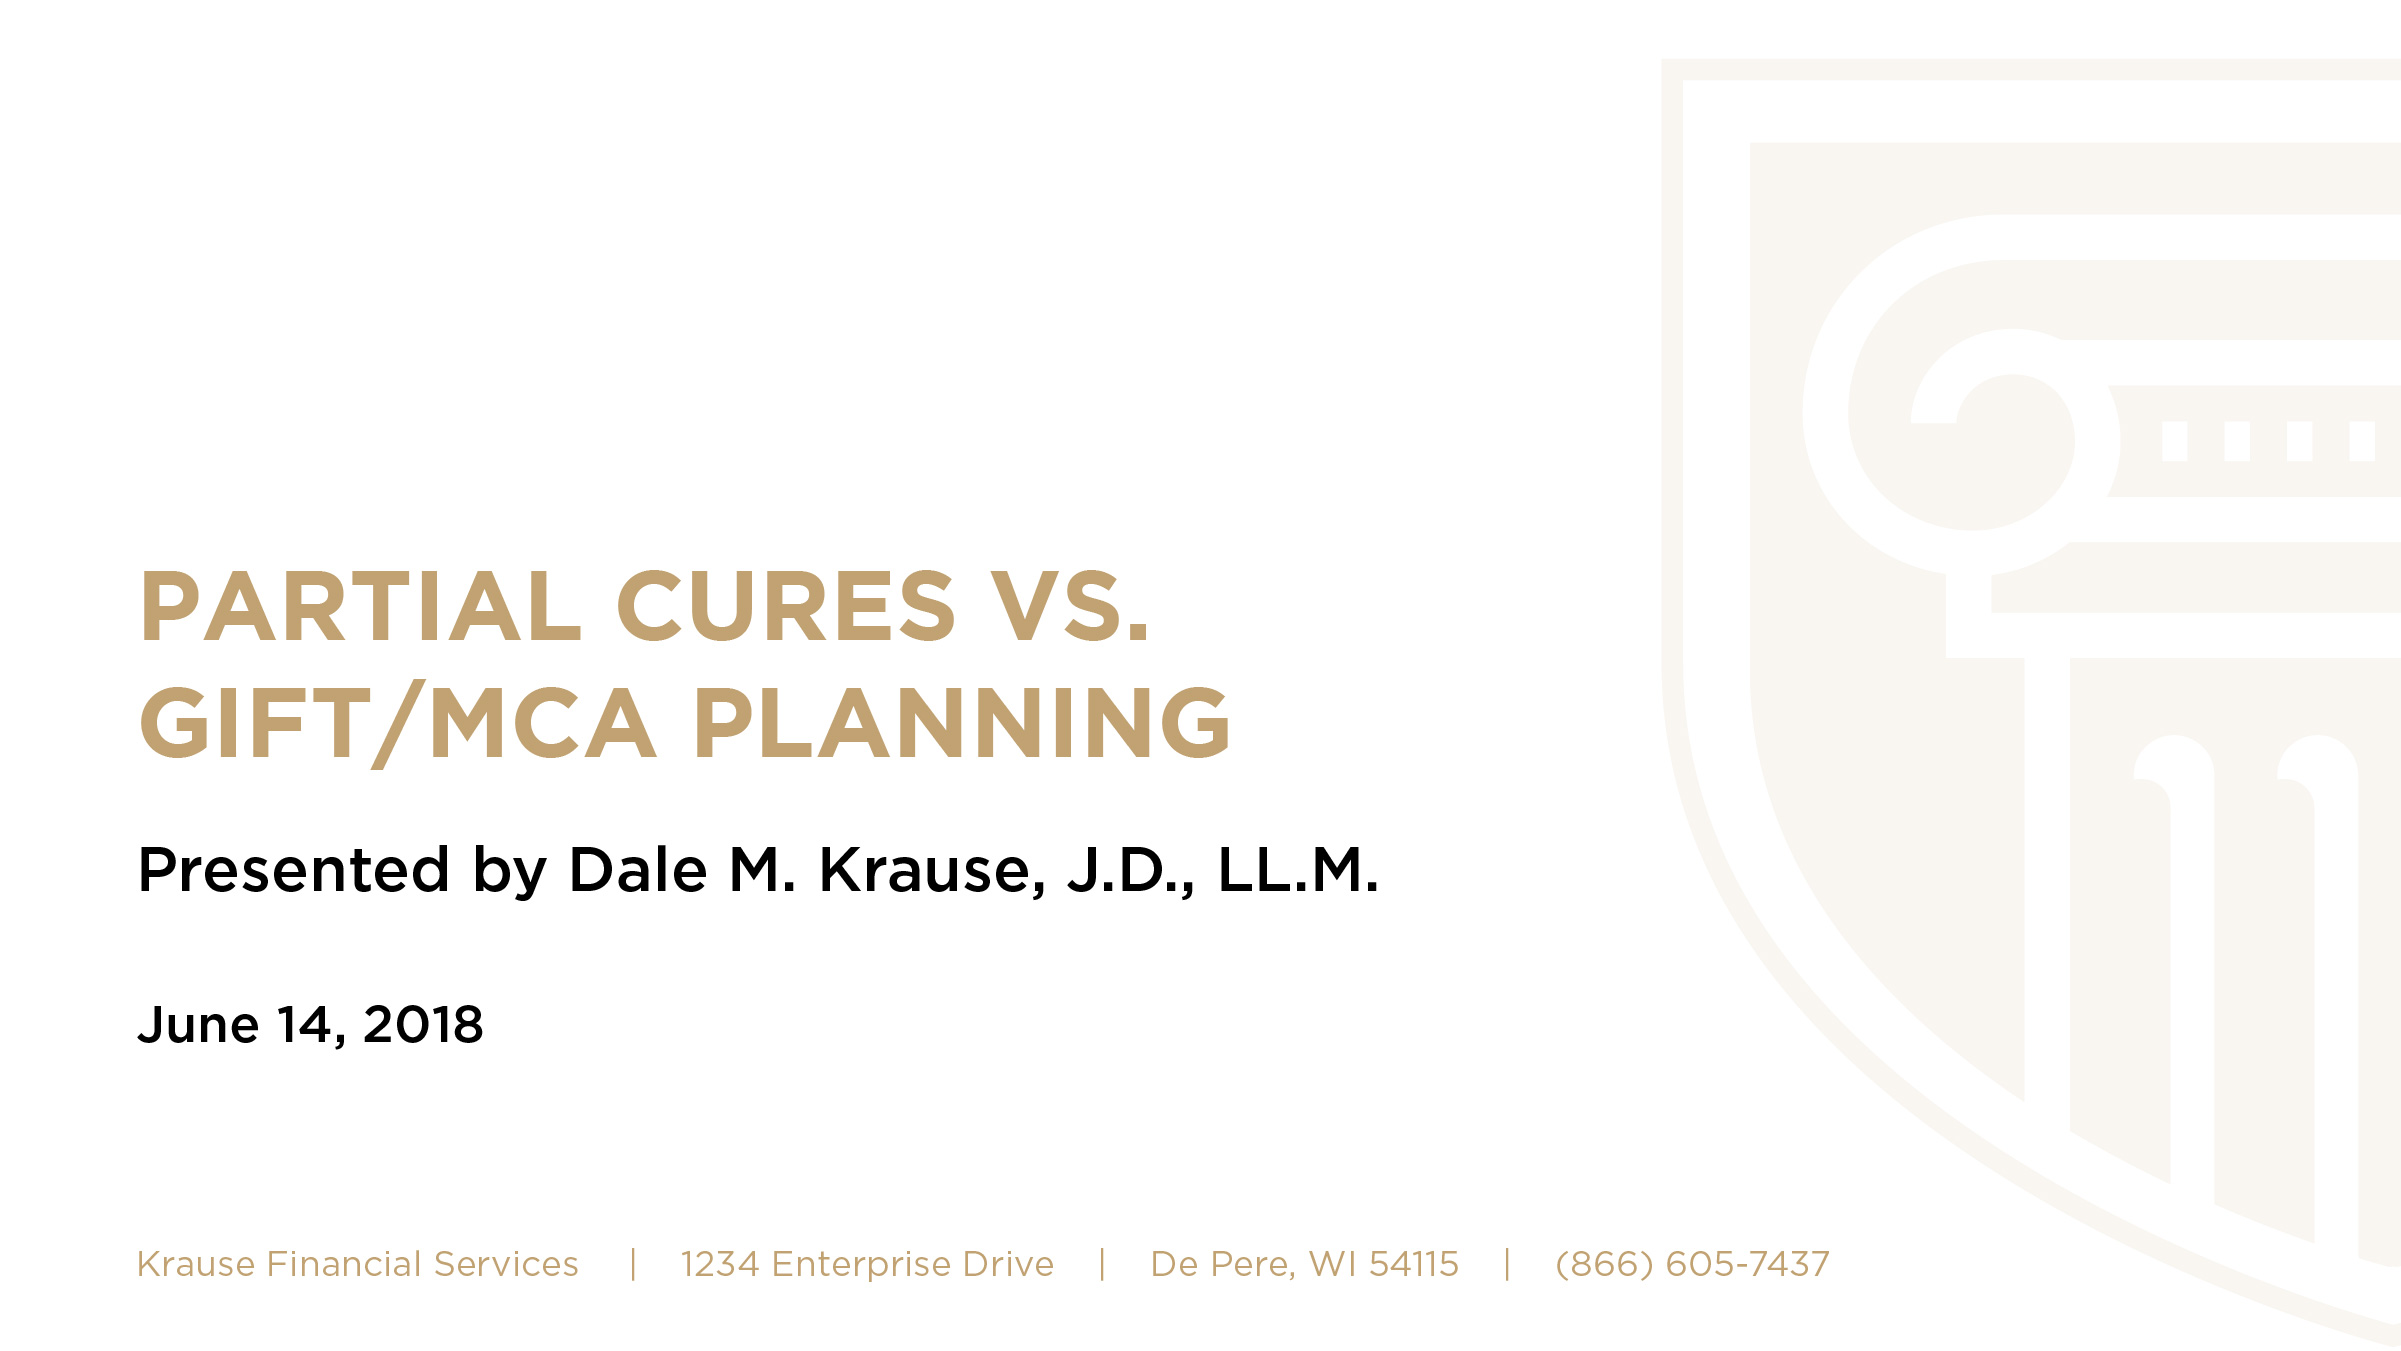 Partial Cures vs. Gift/MCA Planning